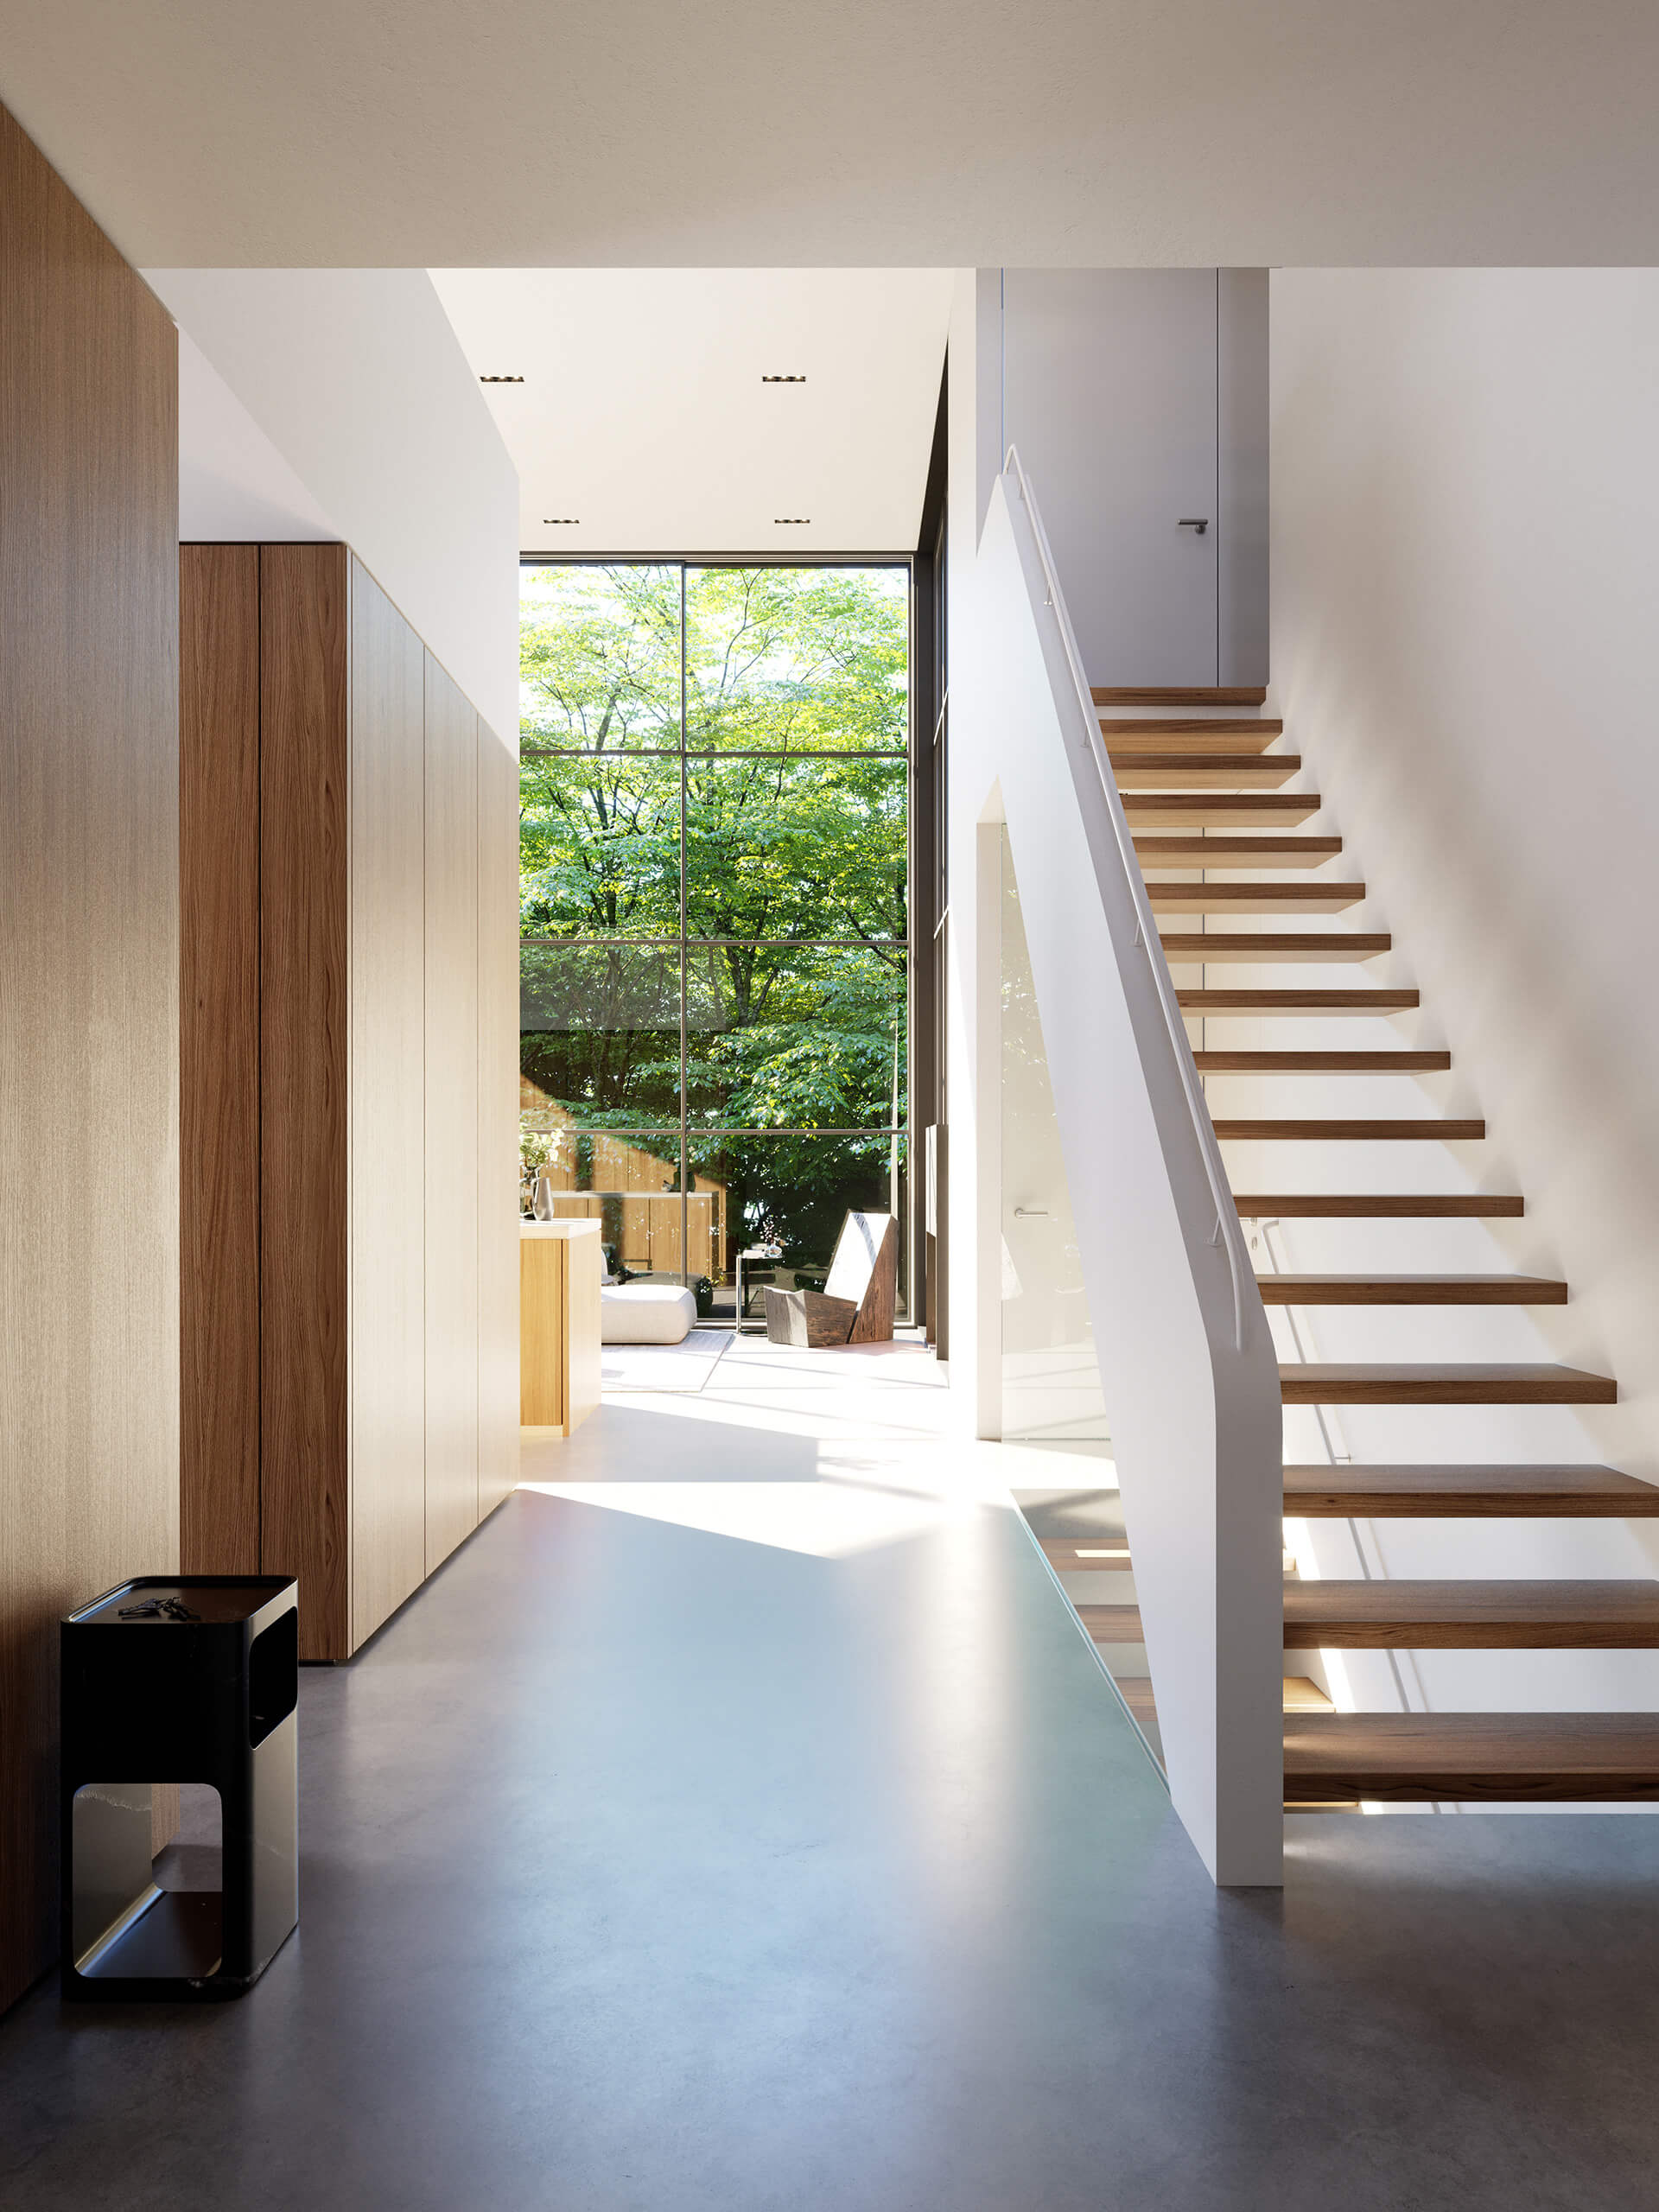 The grand foyer of Crestwood Residence | Crestwood Residence by Ancerl Studio | STIRworld